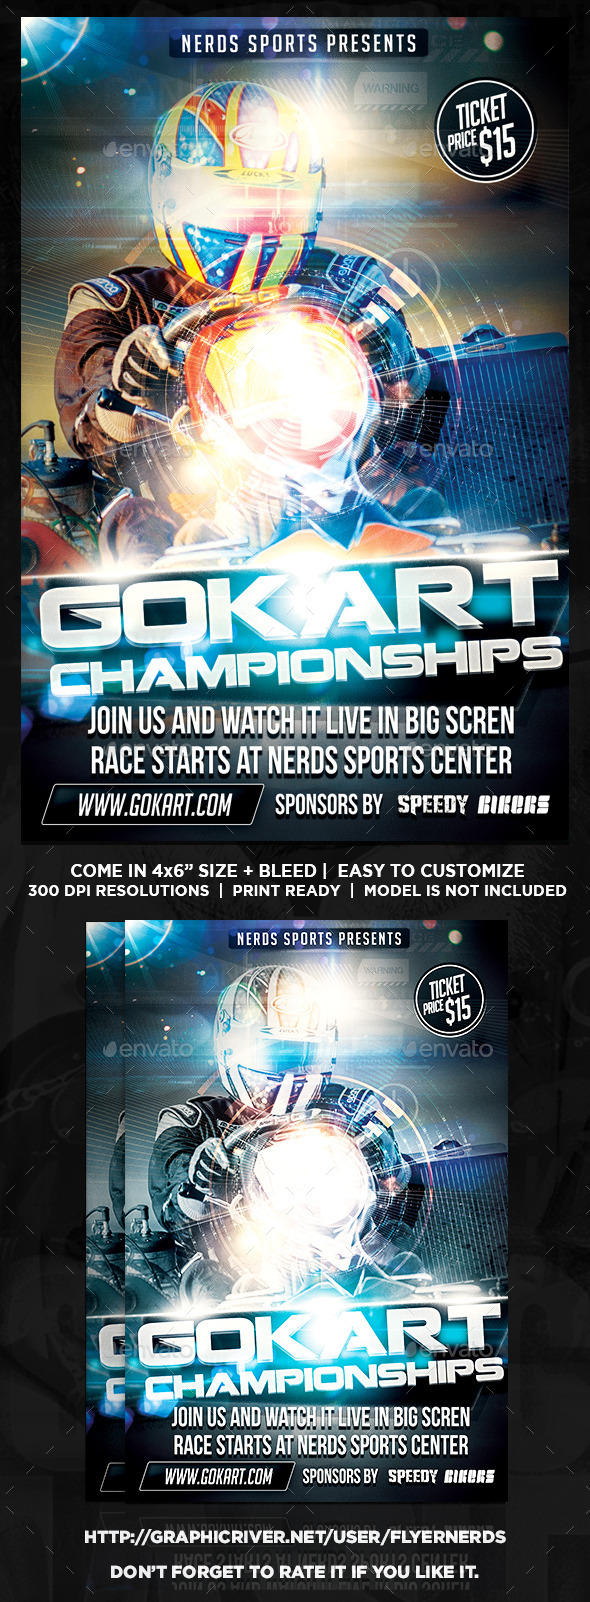 Gokart 2015 Championships Sports Flyer - Sports Events